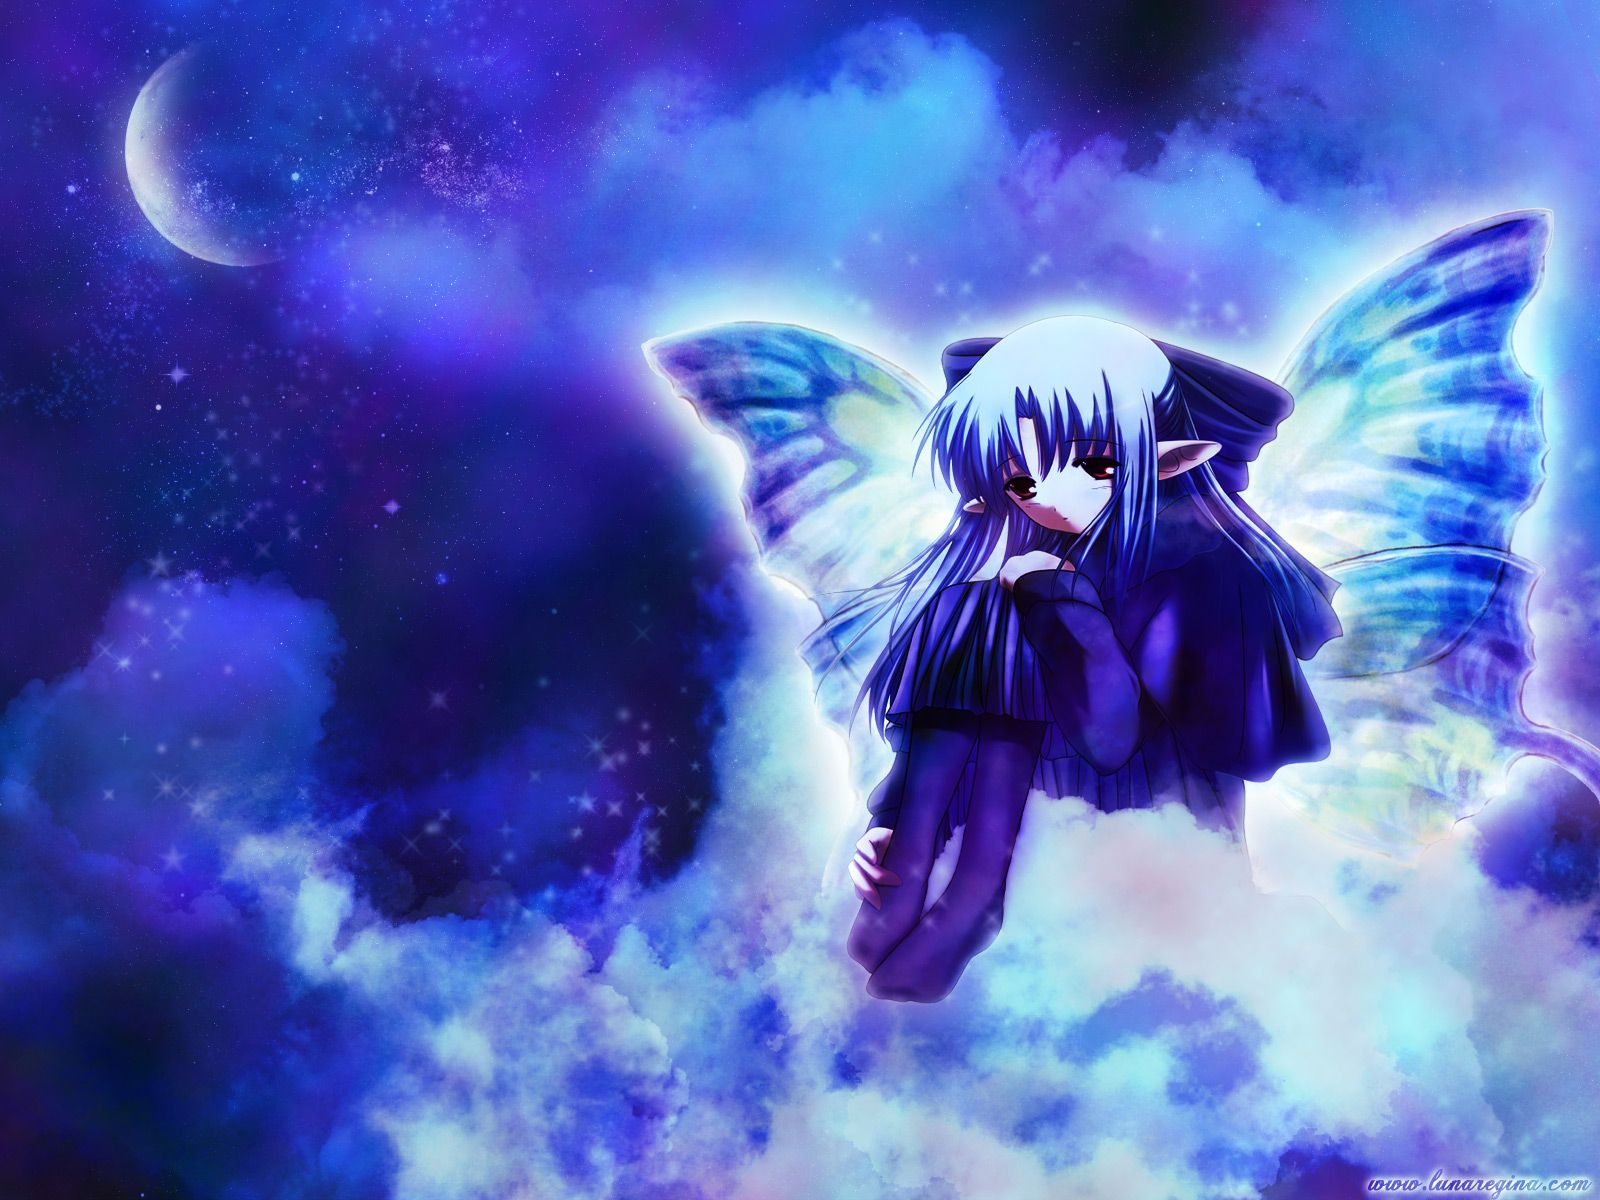 Lonely+Anime+Girl lonely girl, anime, girl, moon, wings